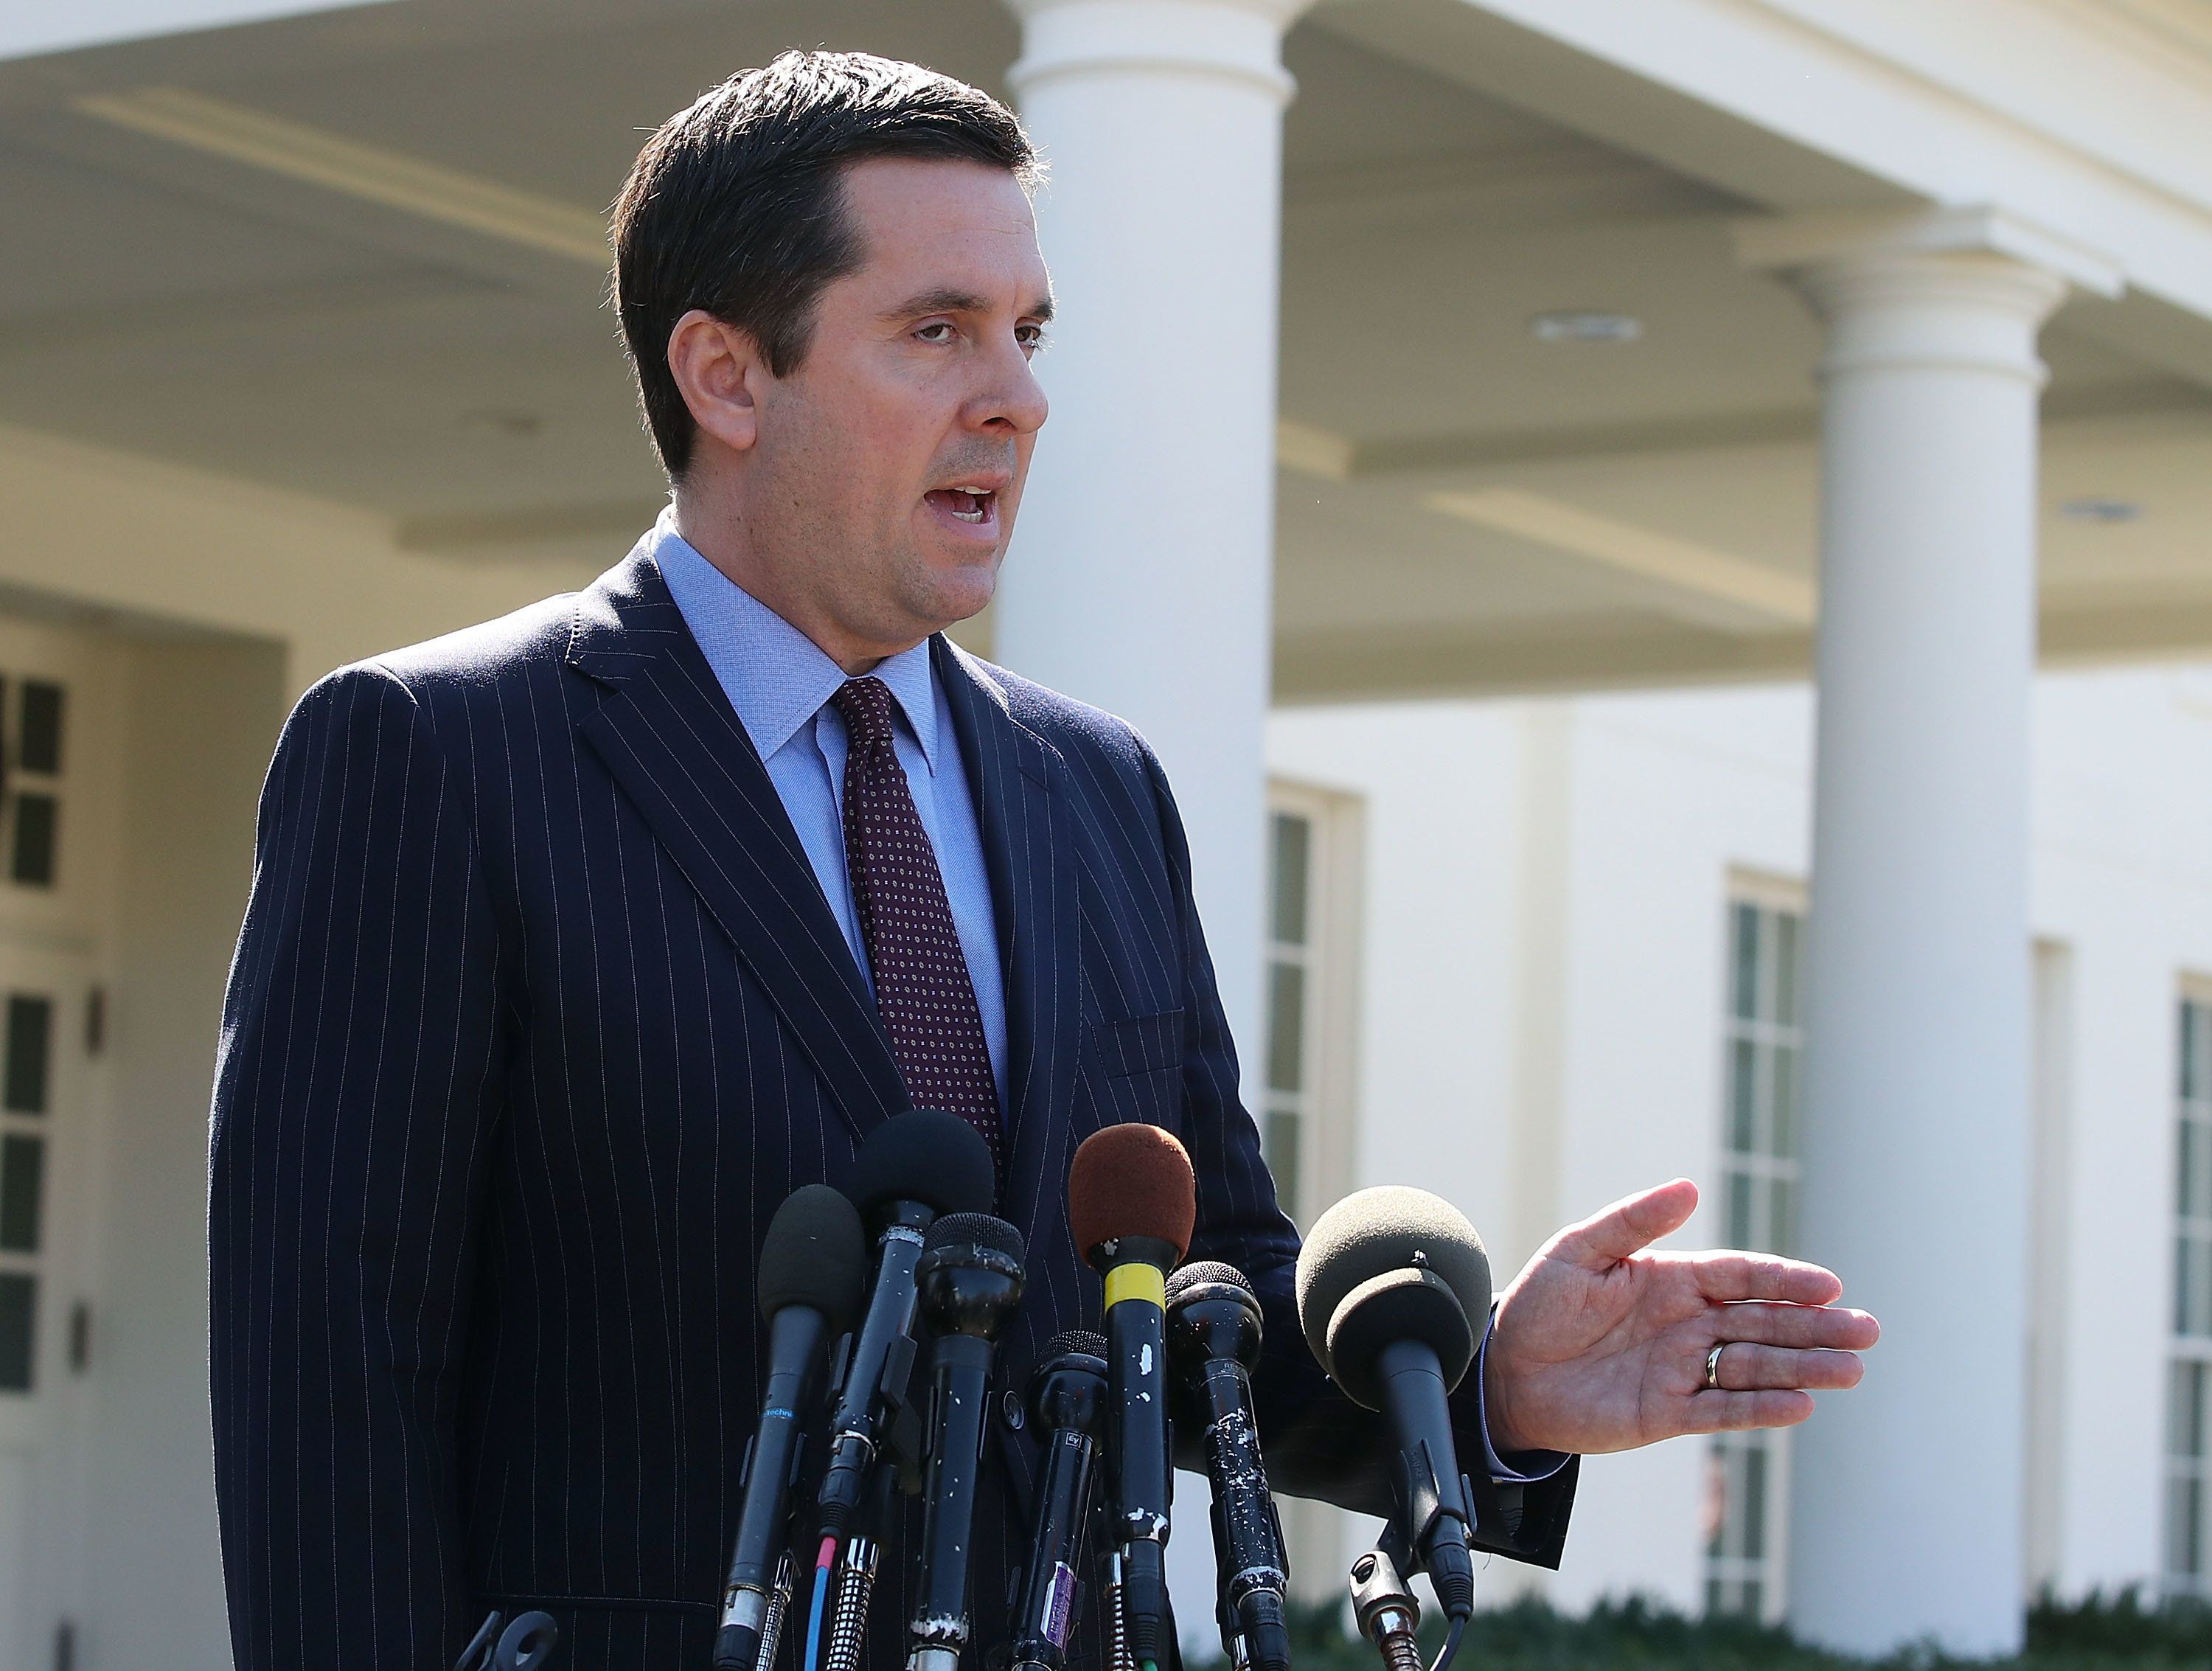 House Intelligence Committee Chairman Devin Nunes (R-Calif.) speaks to reporters after a meeting at the White House on March